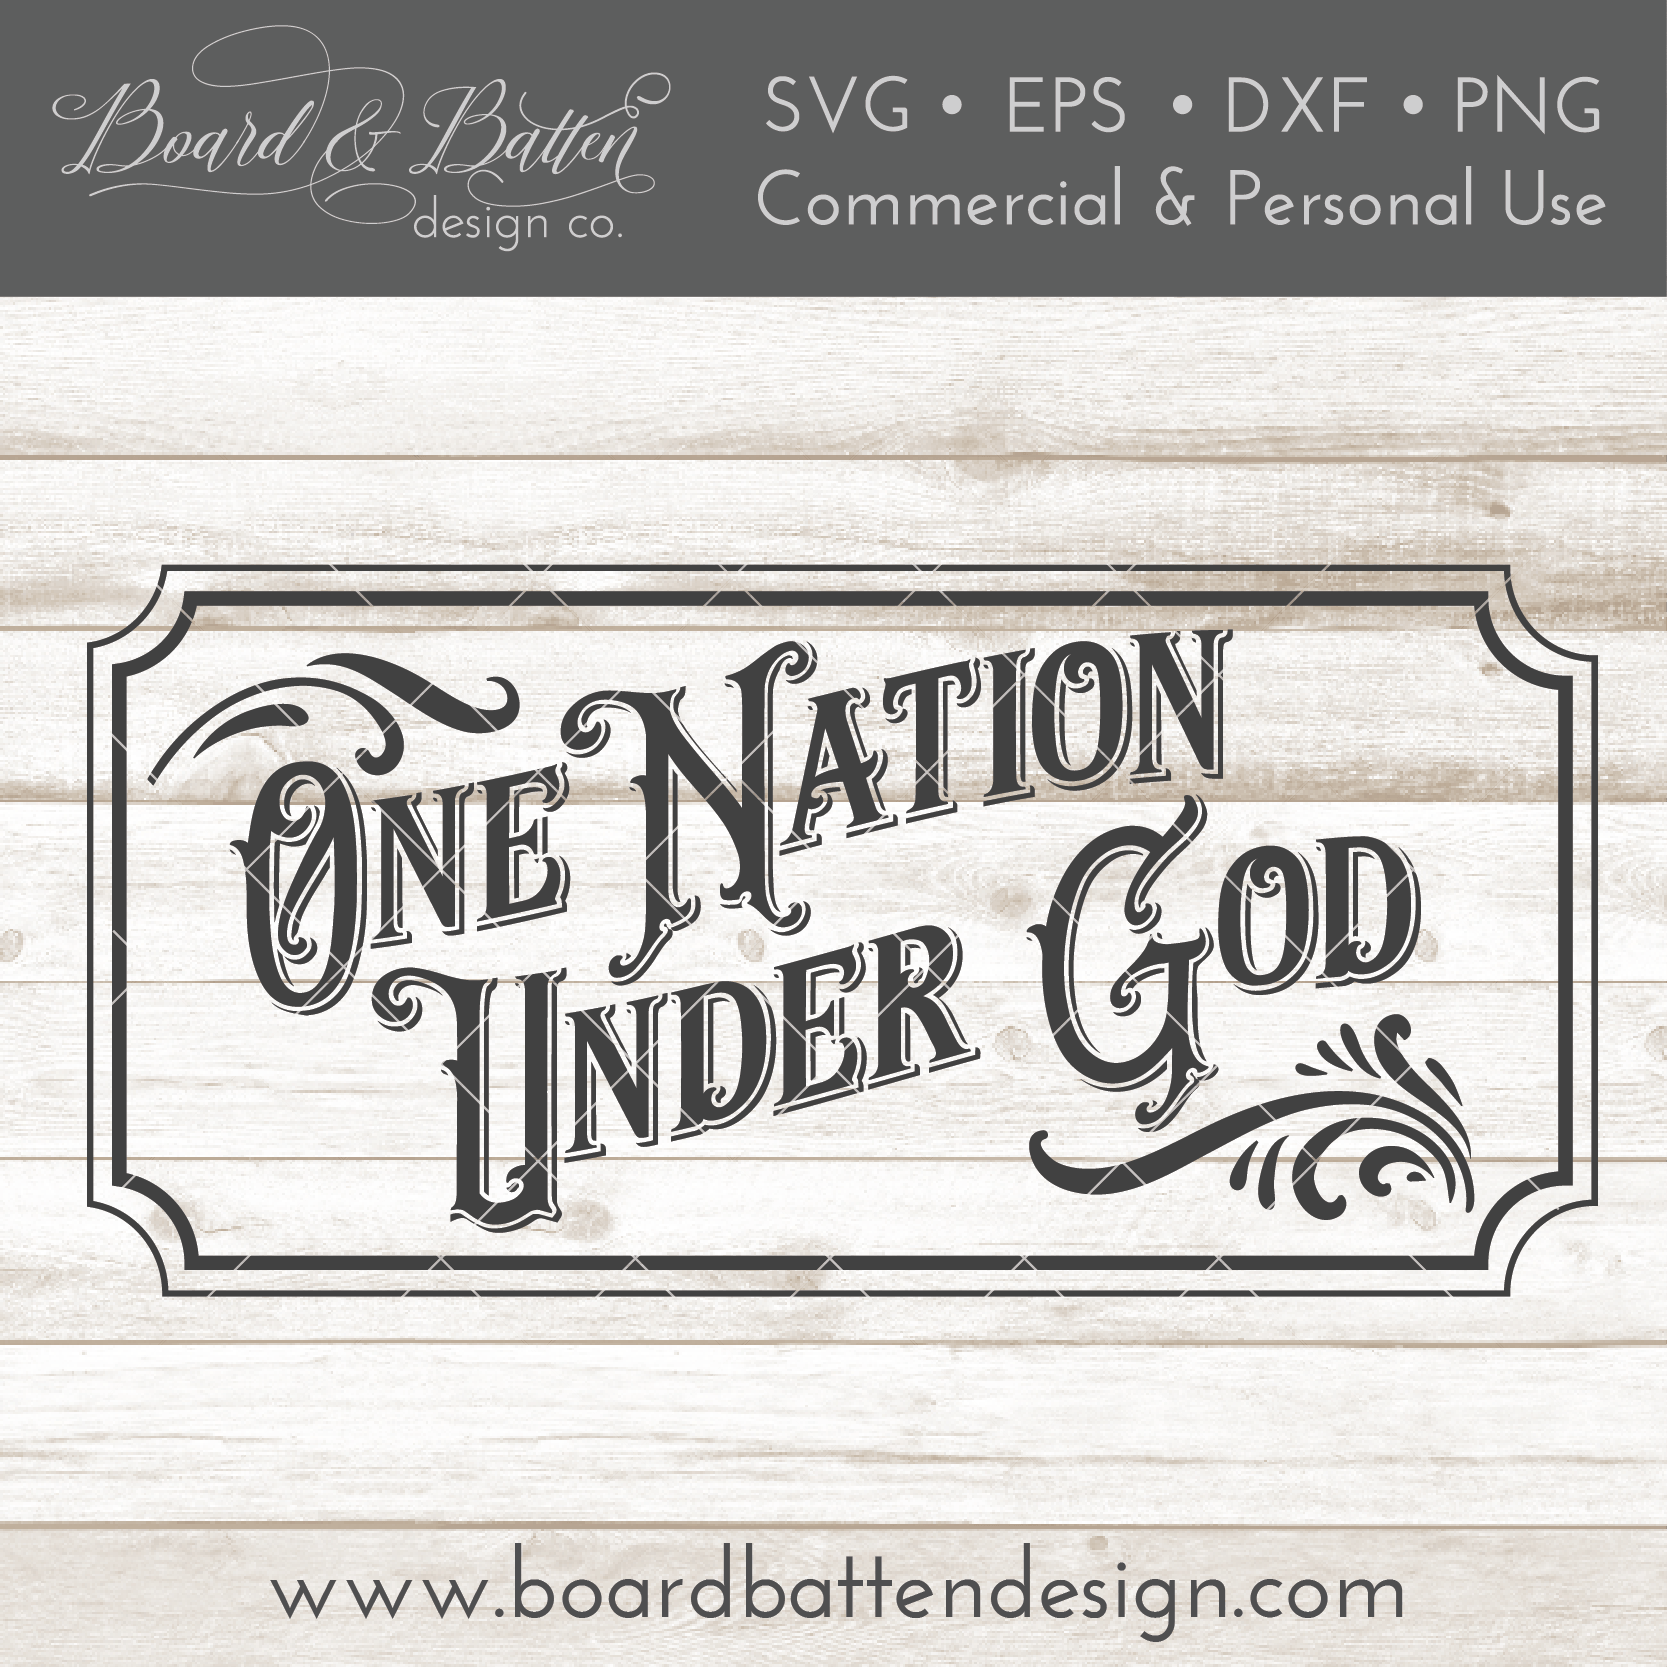 Vintage One Nation Under God SVG File - Commercial Use SVG Files